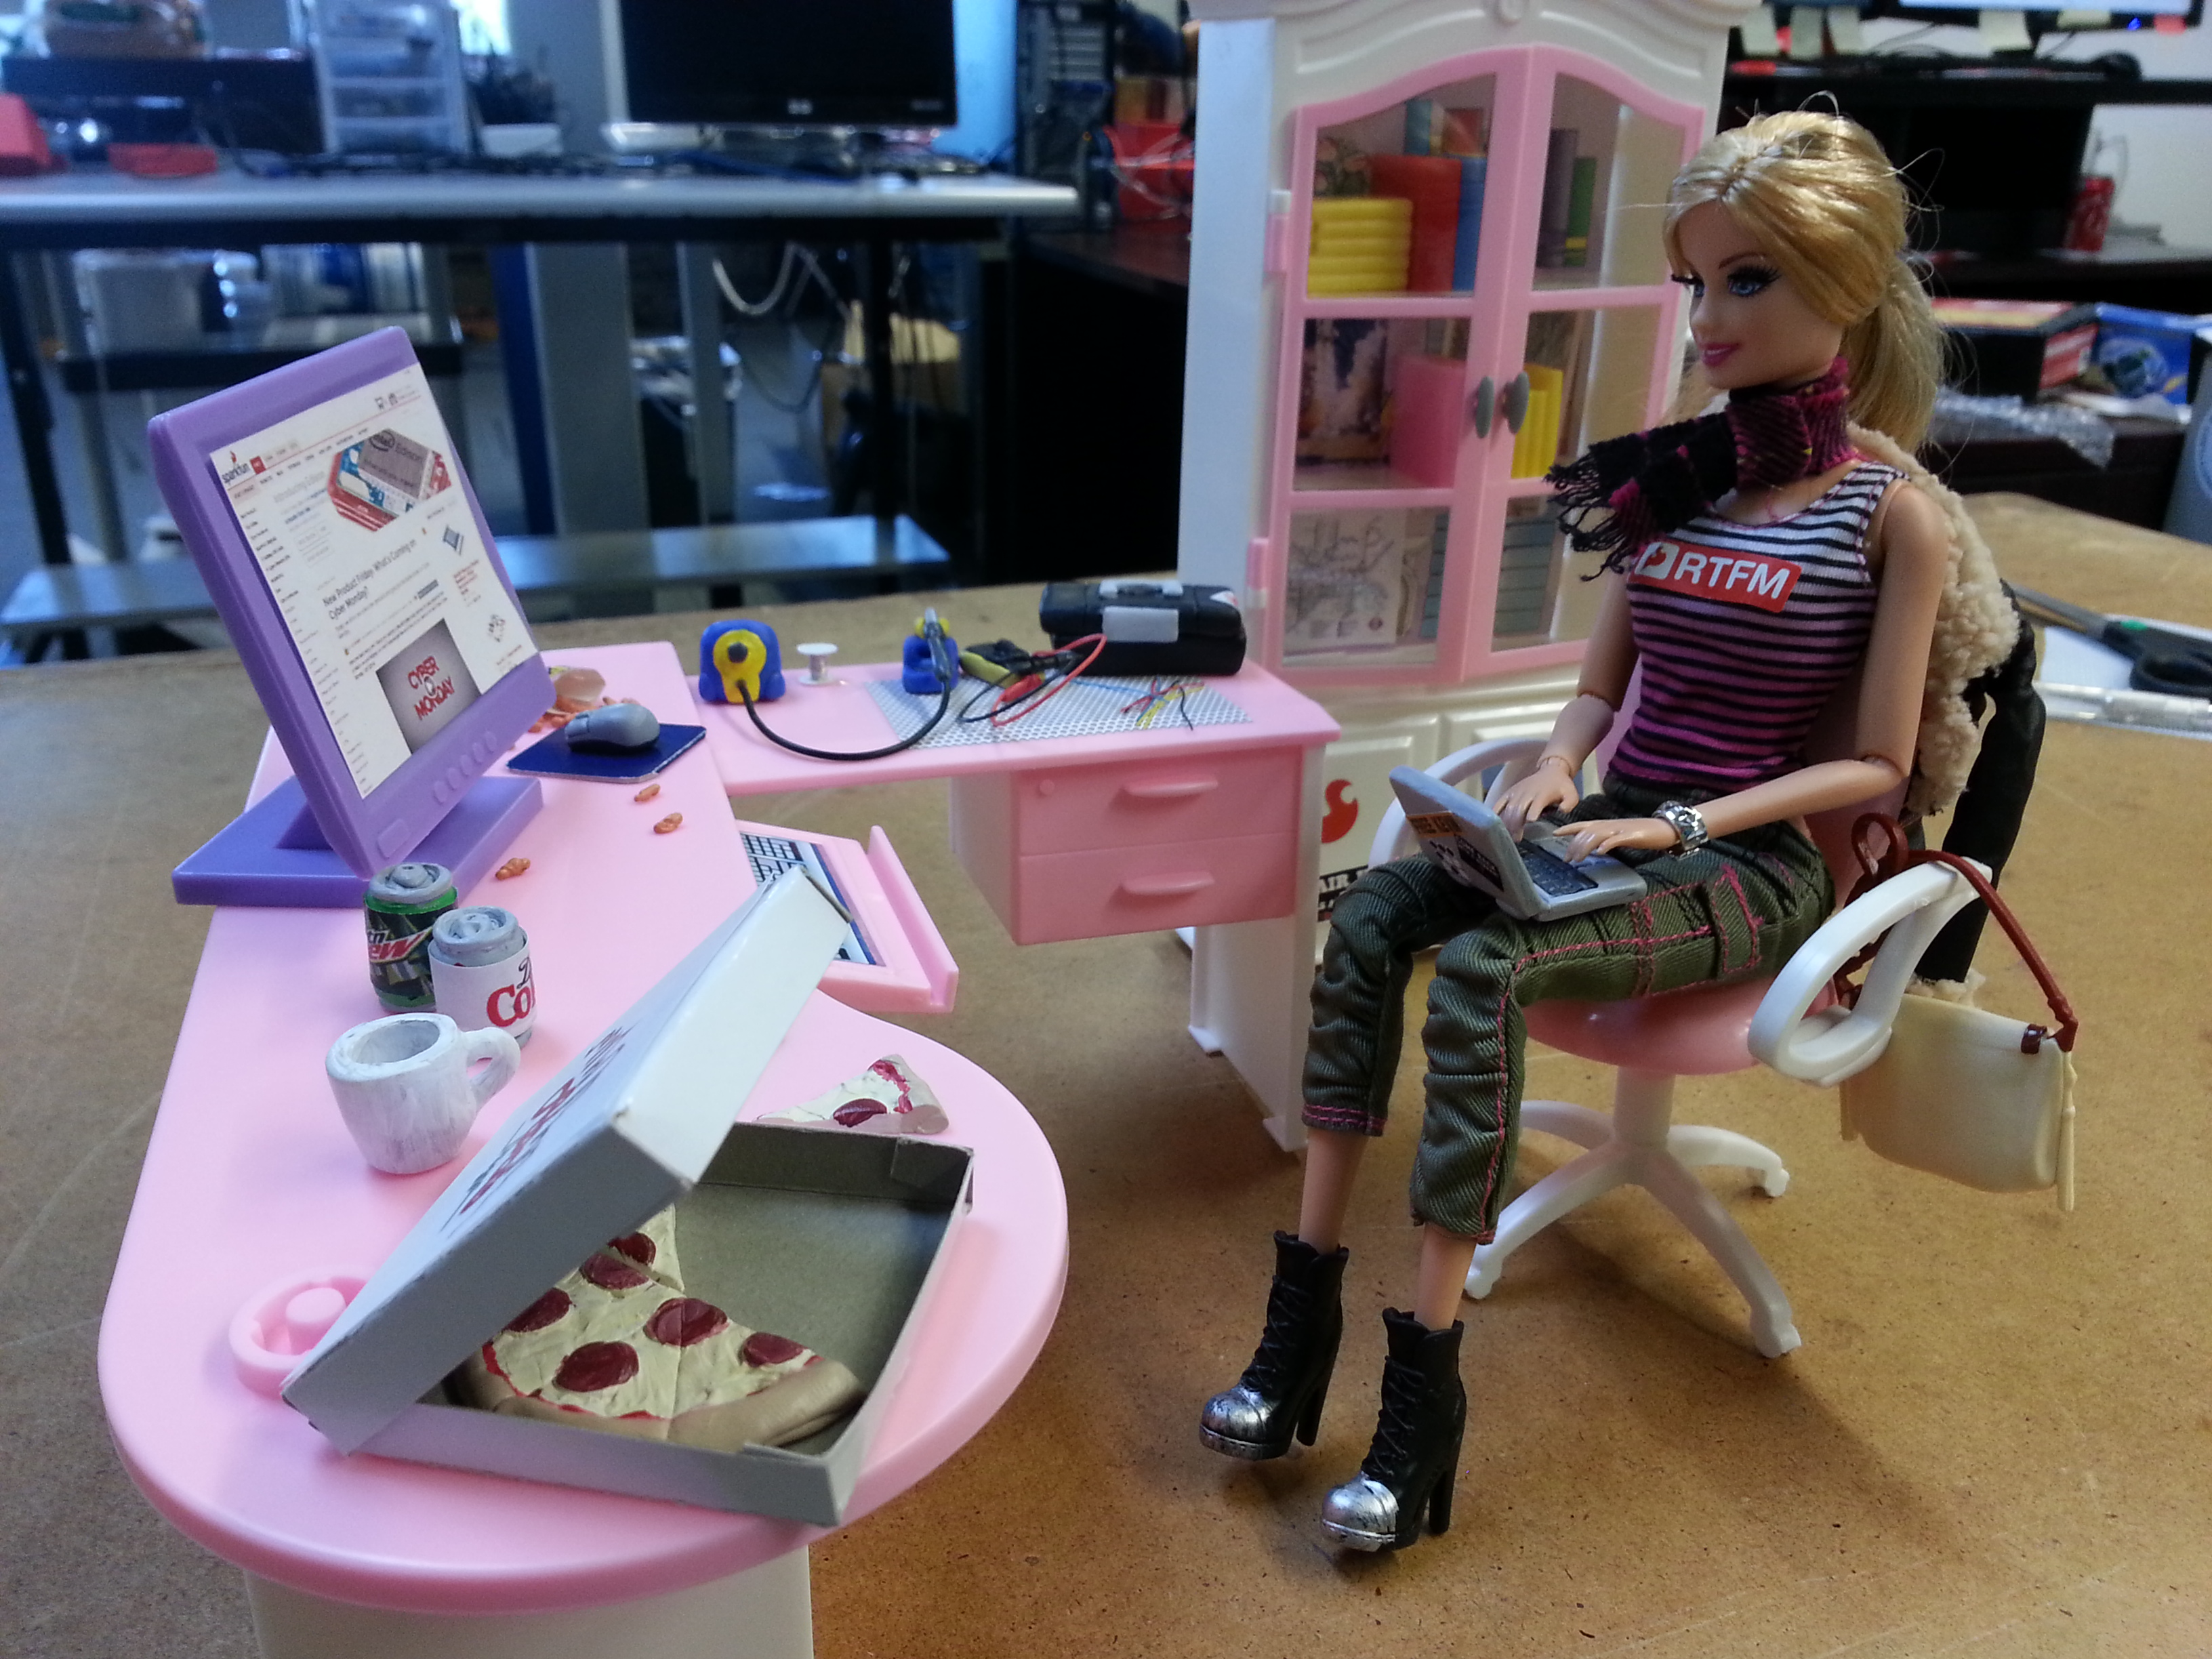 Open source Barbie